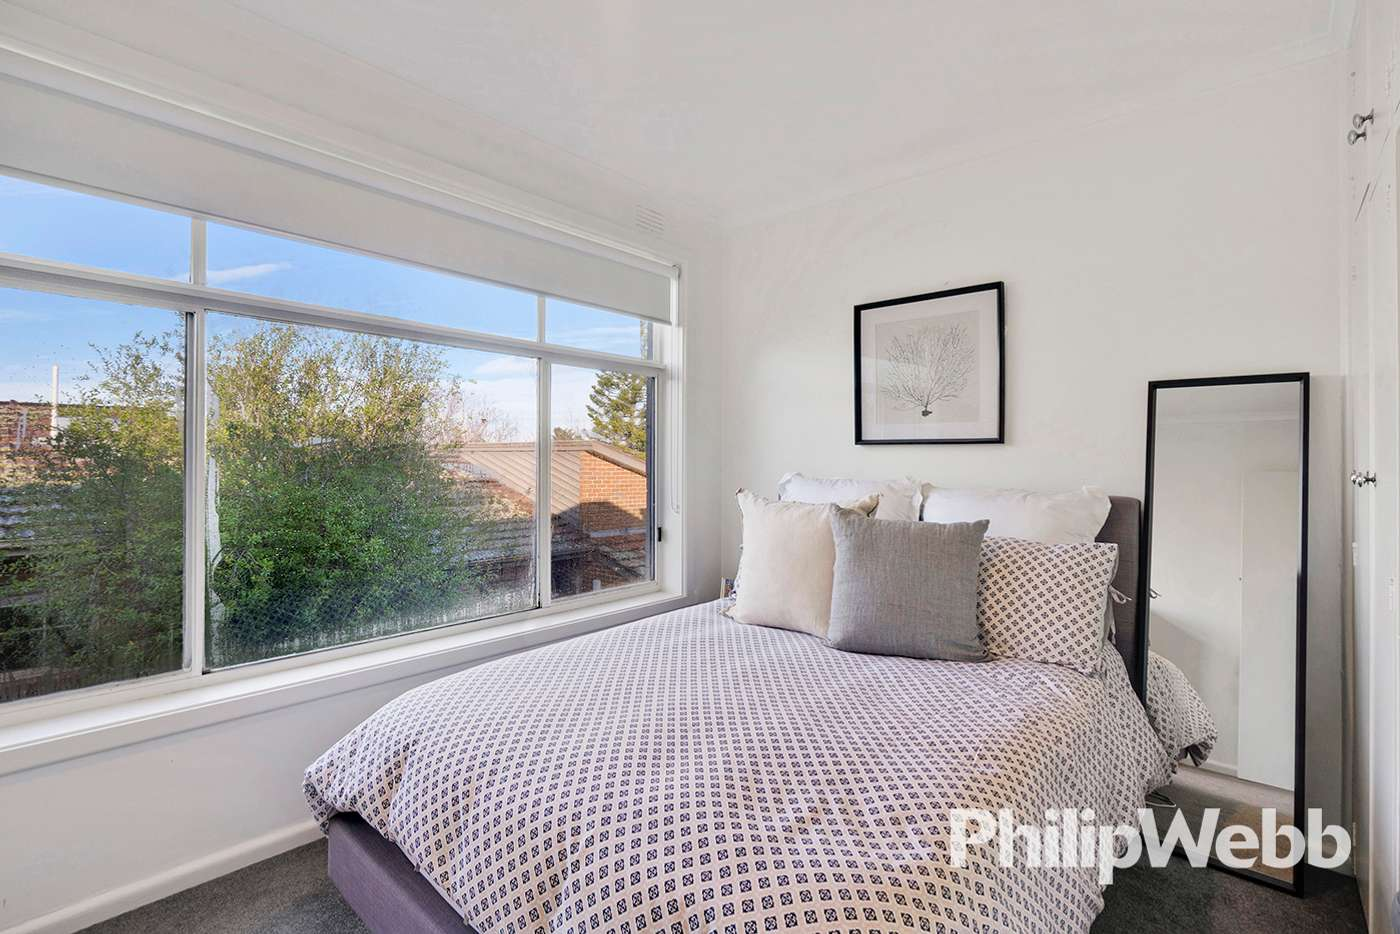 Sixth view of Homely apartment listing, 7/12 Belmont Avenue, Glen Iris VIC 3146